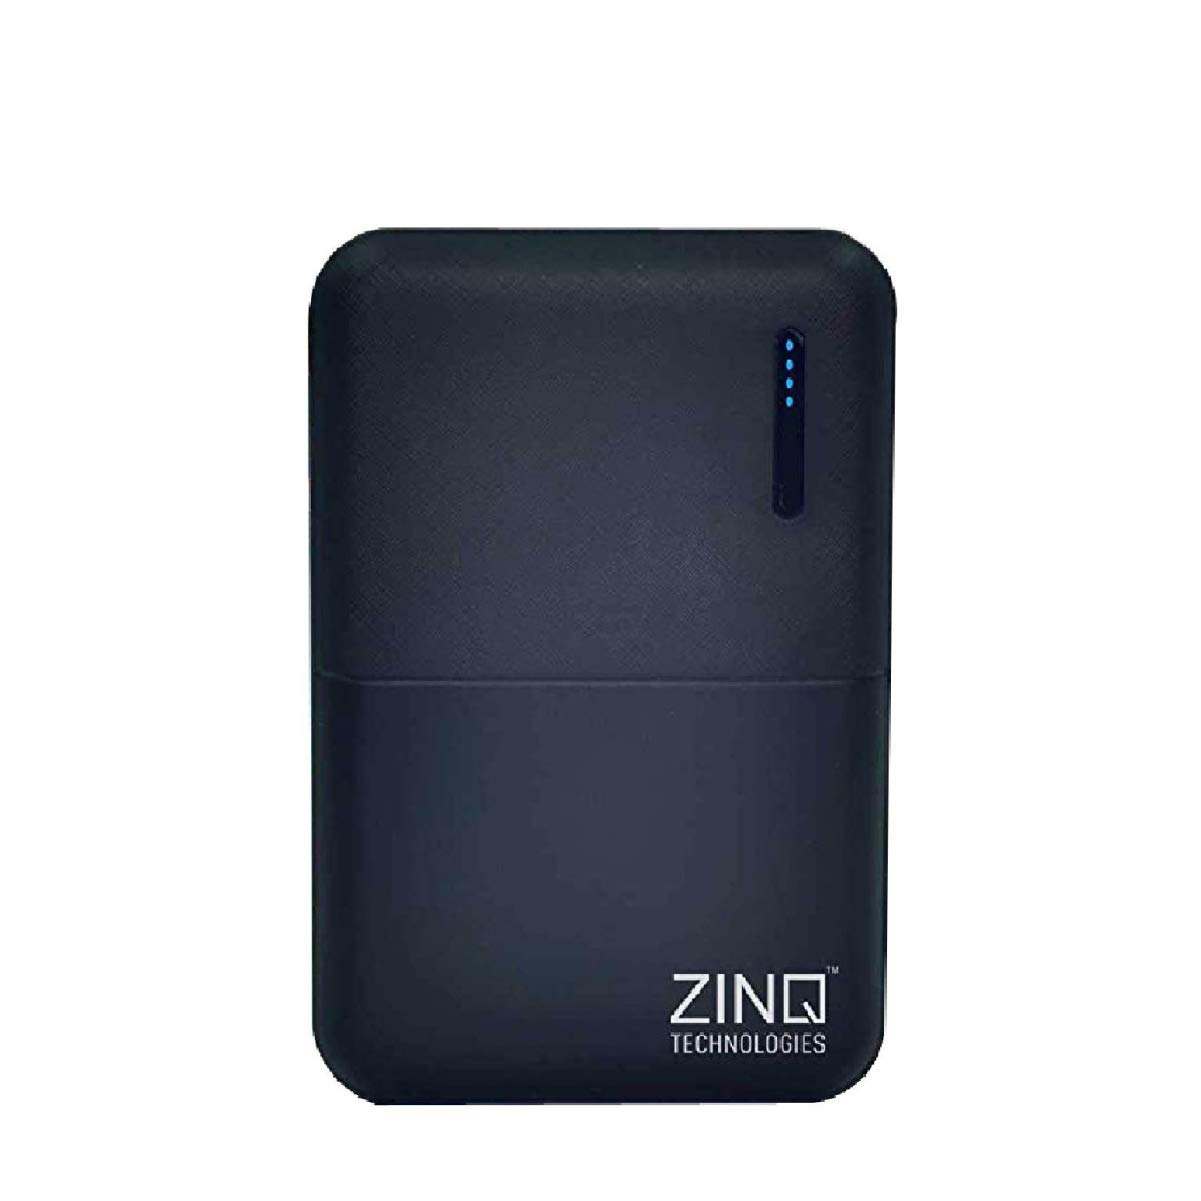 Zinq Technologies Z10KP 10000mAH Lithium Polymer Power Bank (Qualcomm Certified) with QC 3.0 (Black)